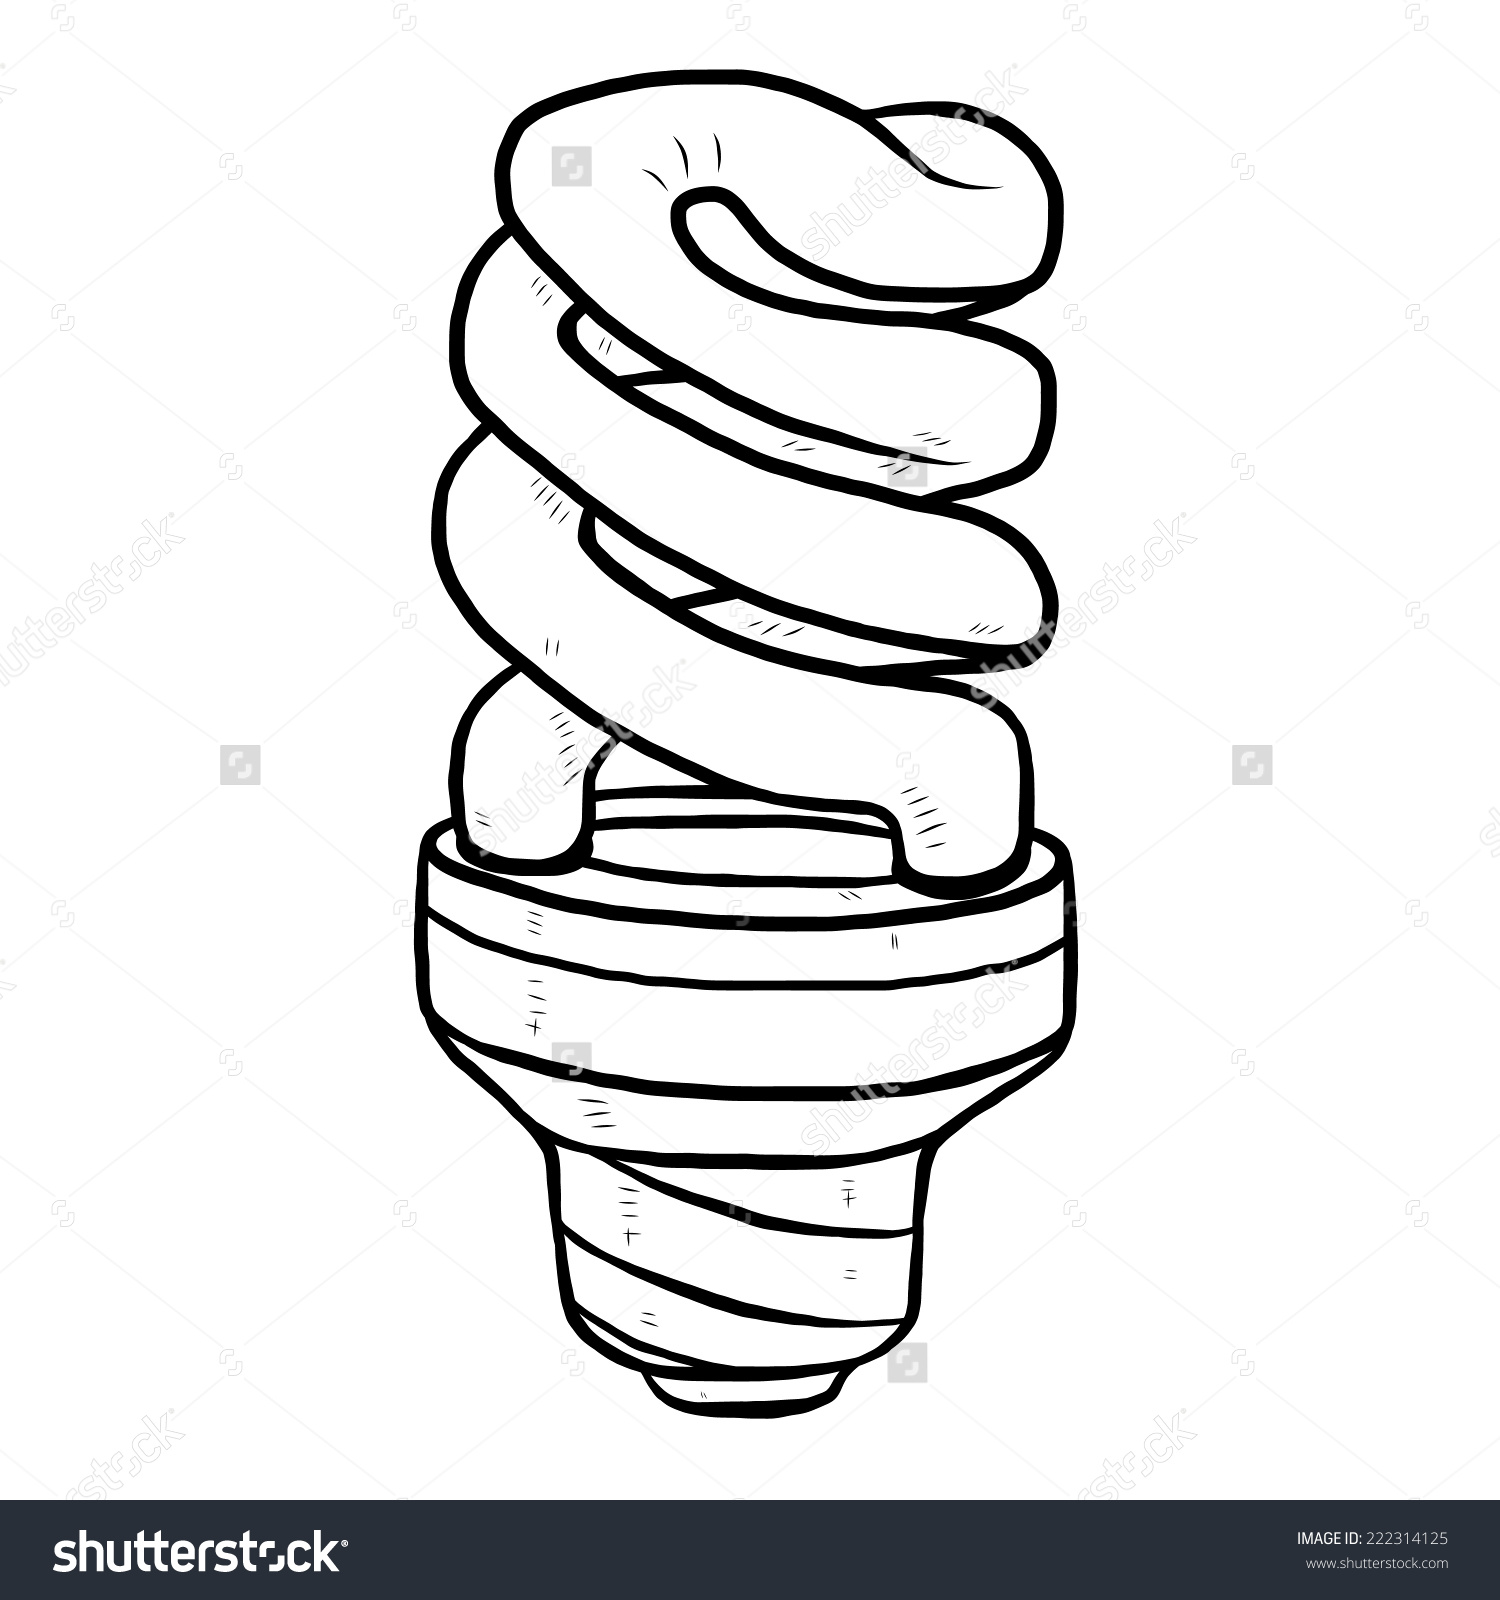 Cfl Drawing at GetDrawings.com | Free for personal use Cfl Drawing ... for Fluorescent Tube Drawing  111ane